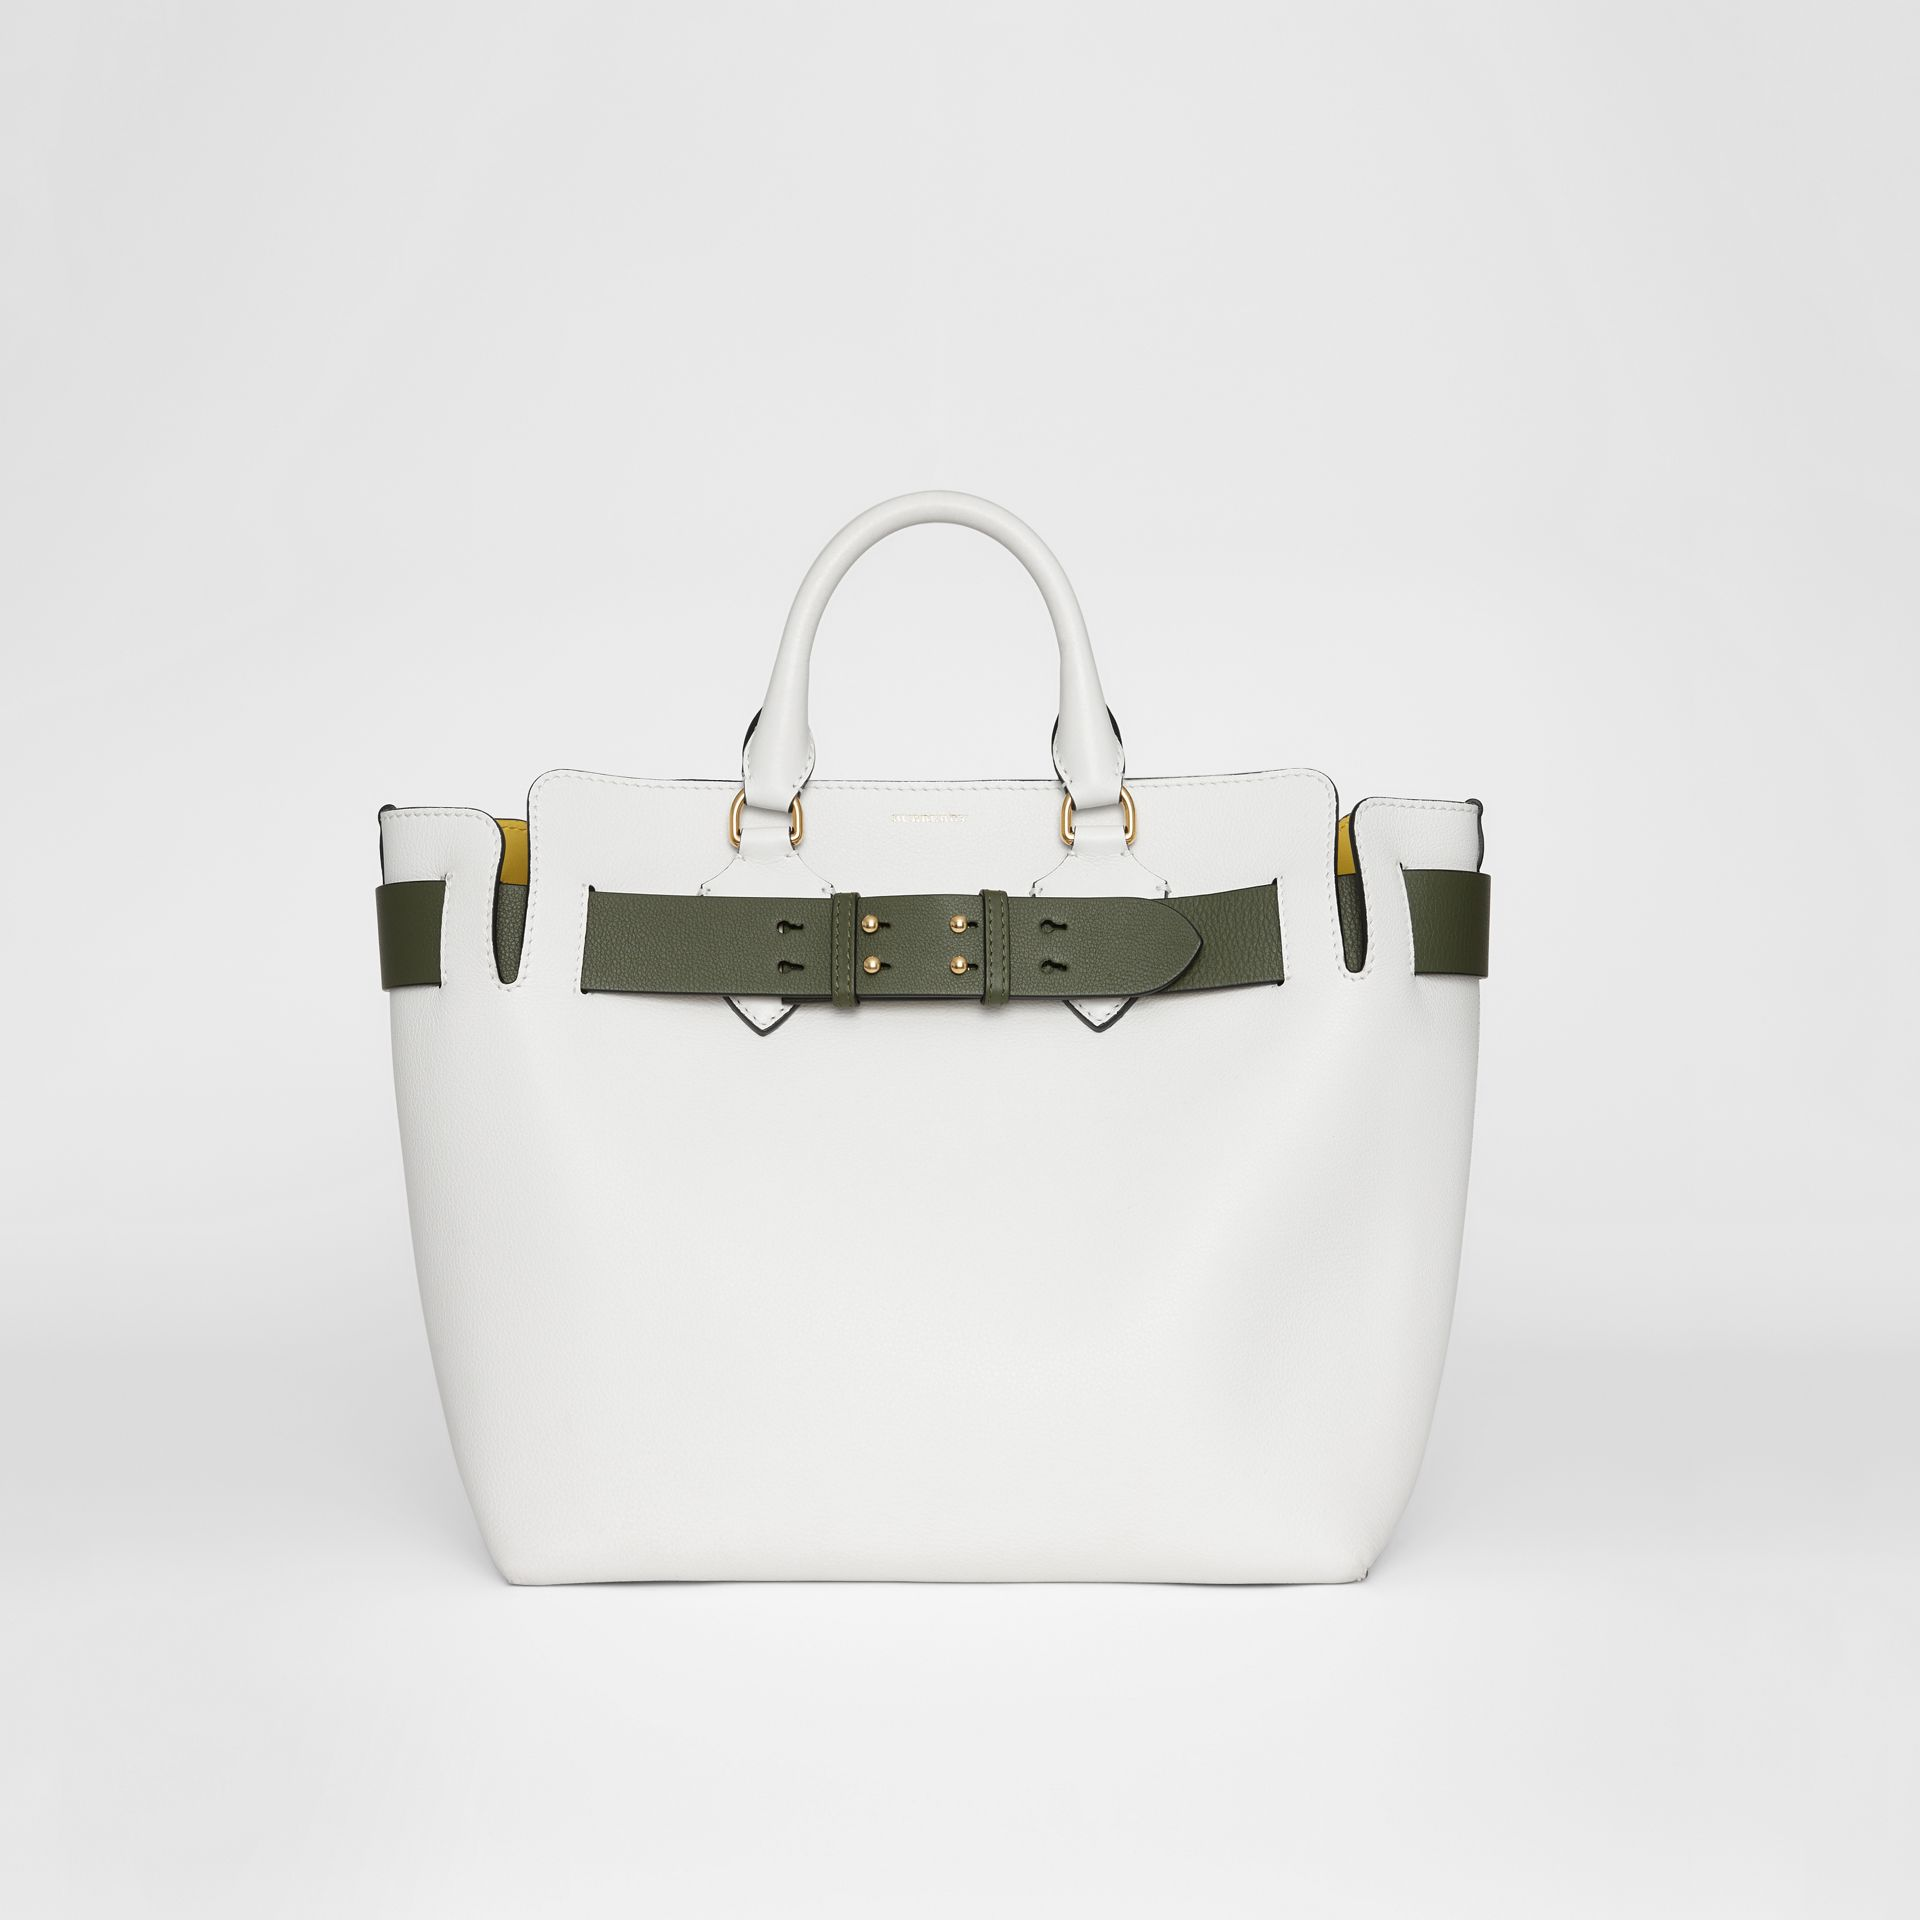 Sac The Belt moyen en cuir (Blanc Craie) - Femme | Burberry - photo de la galerie 0